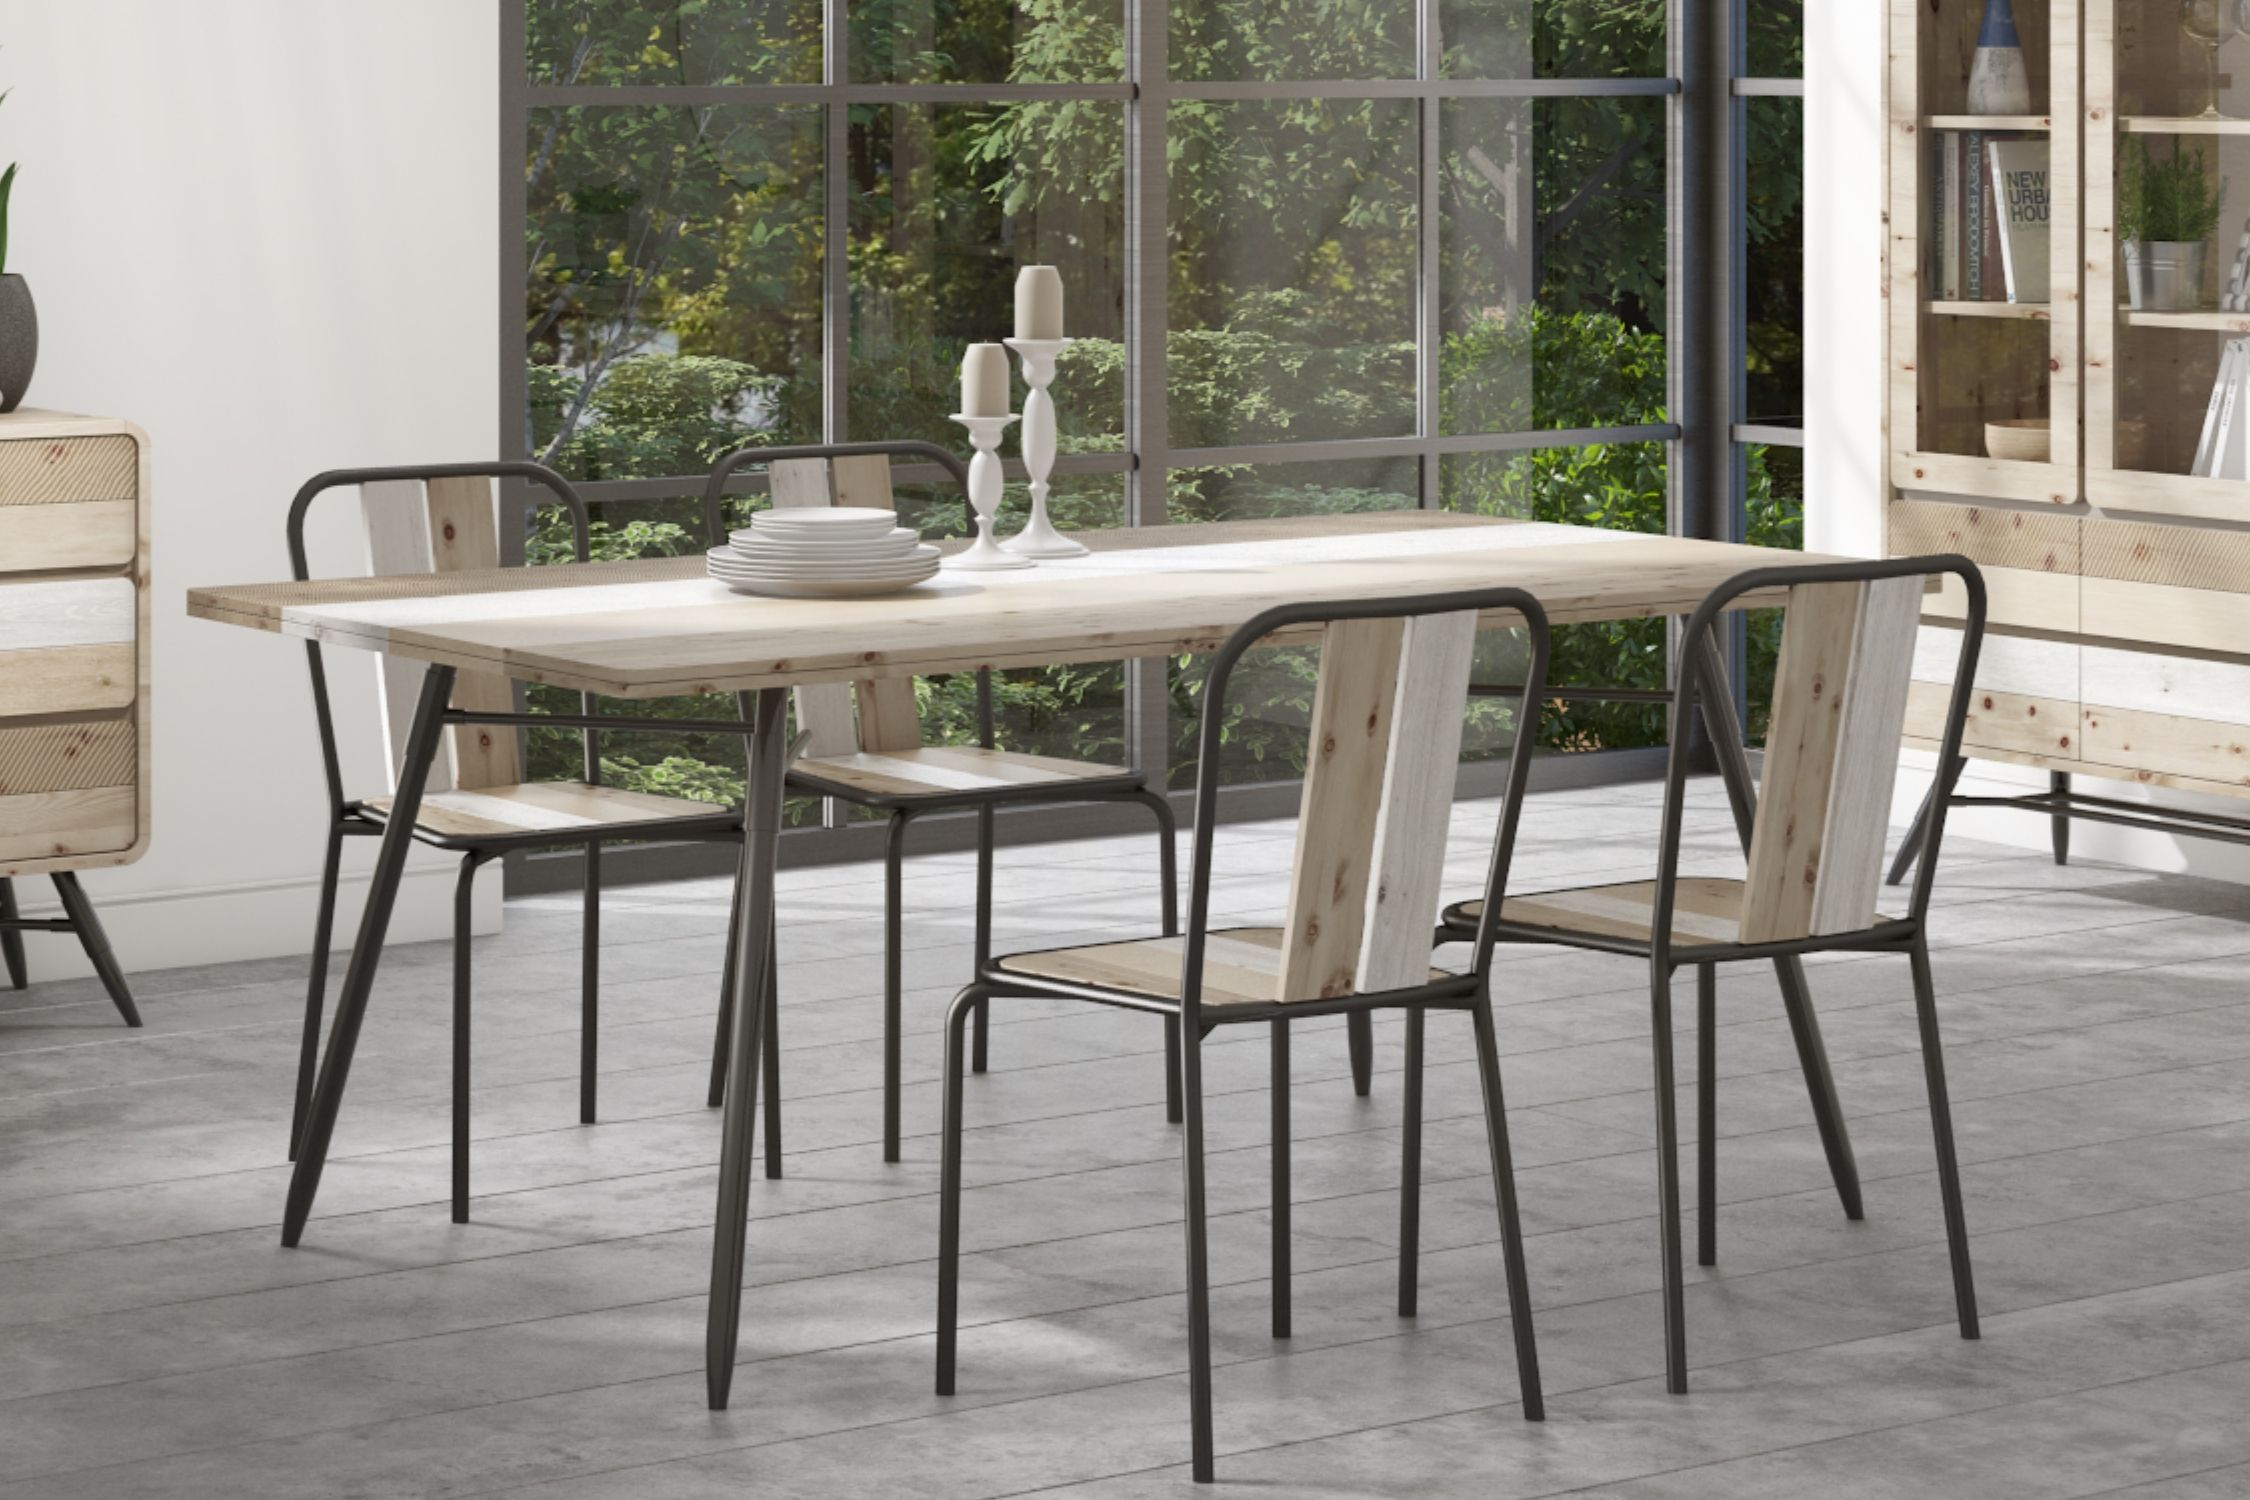 Kuta Modern Reclaimed Wood Industrial Dining Set With 4 Dining Chairs Dining Table And Chair Set Ne Industrial Dining Sets Dining Chairs Industrial Dining